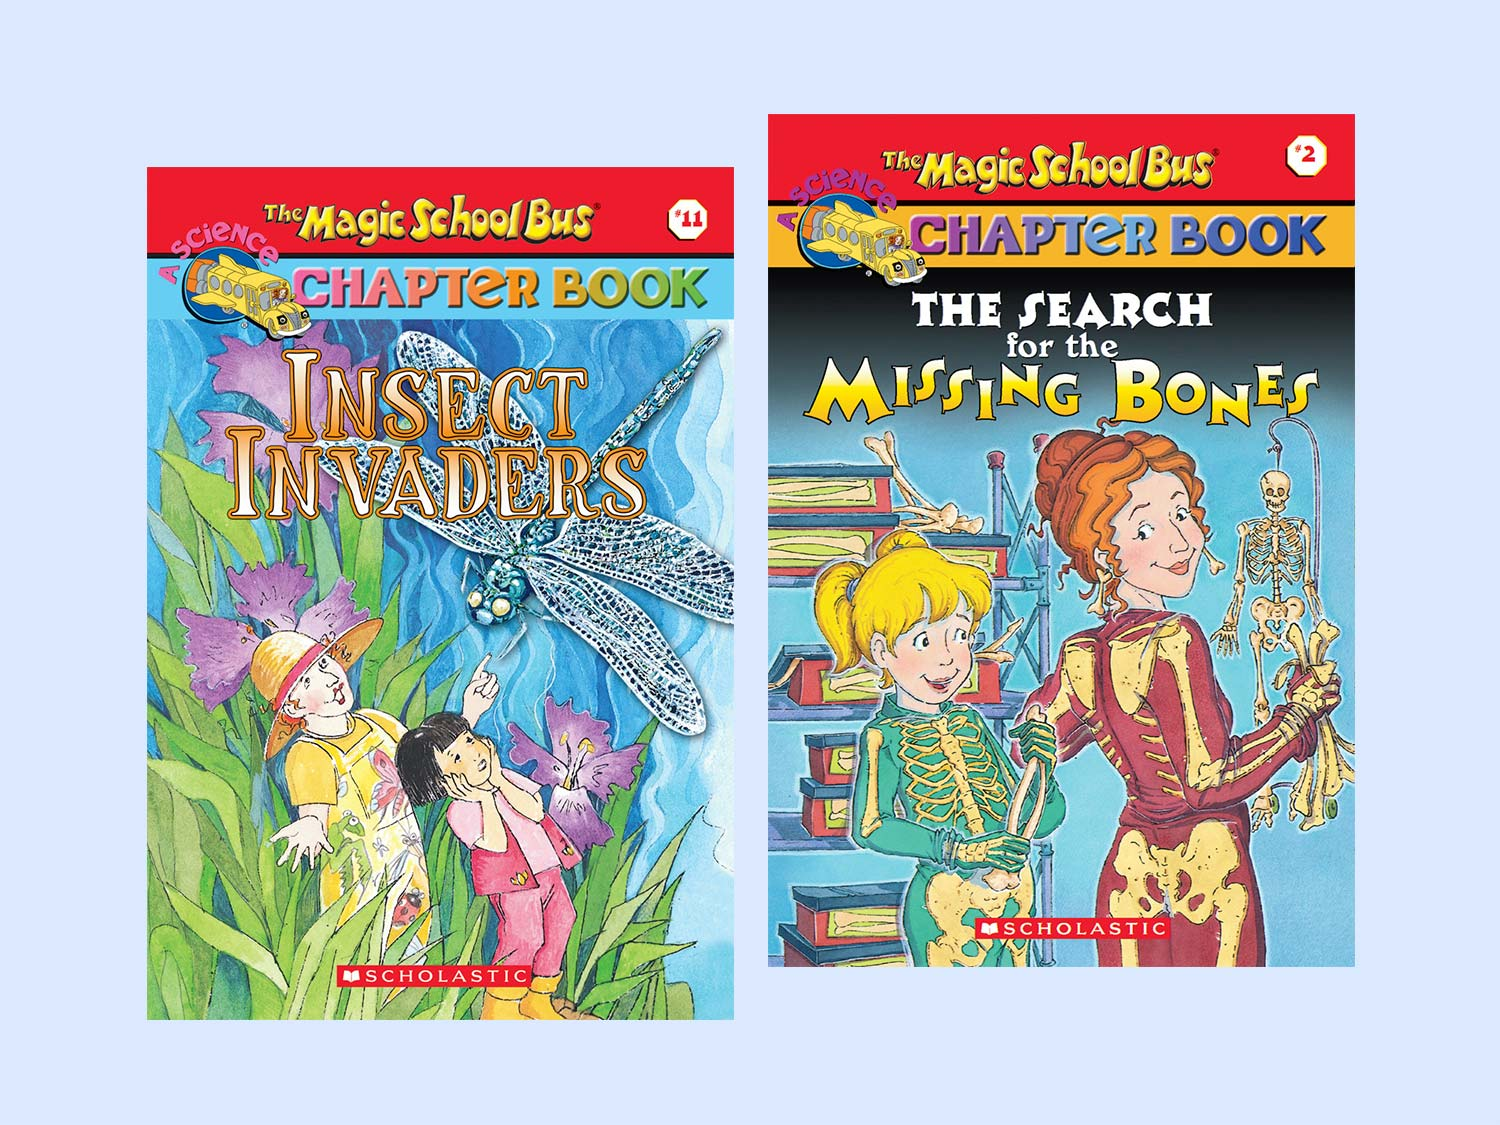 The Magic School Bus Chapter Books Scholastic Parents